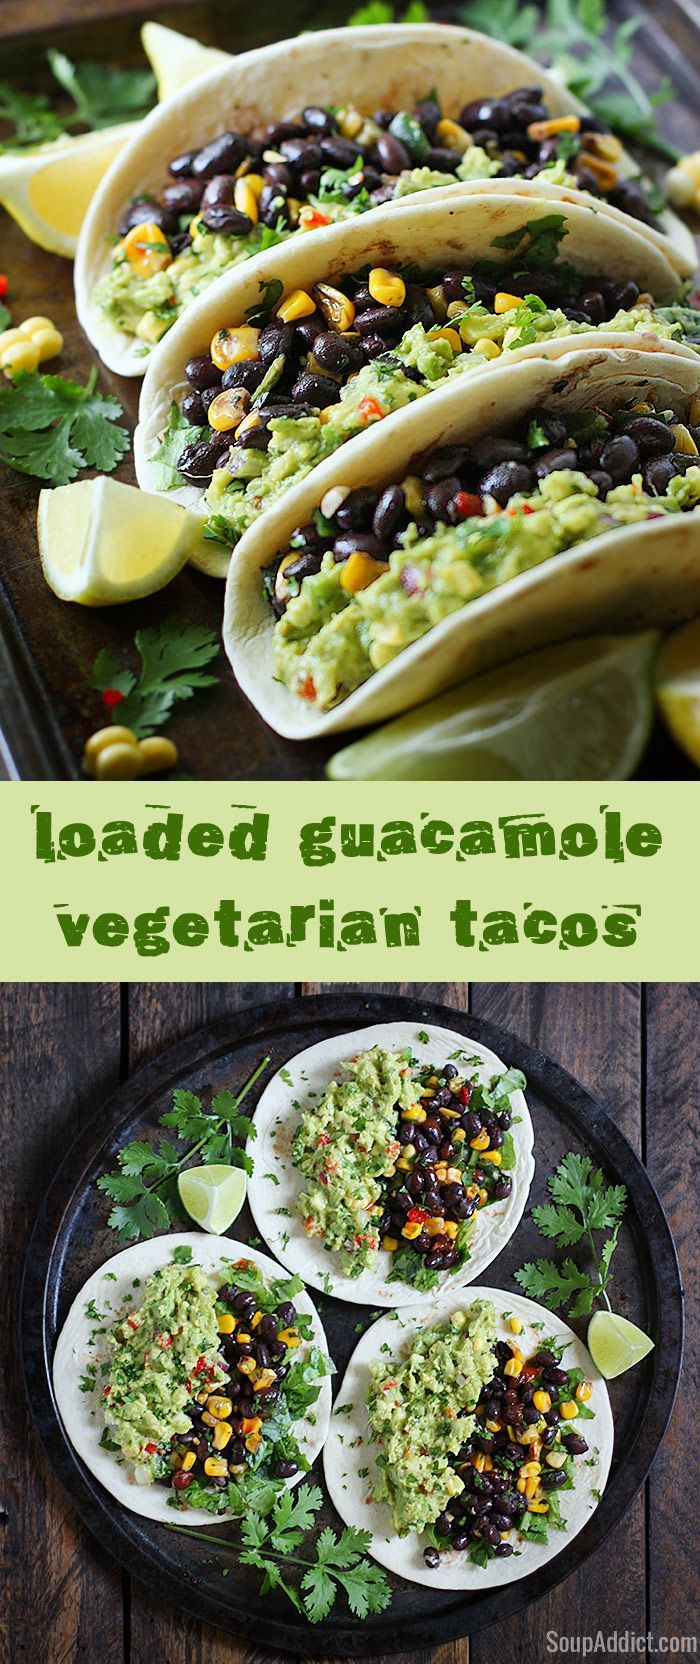 Loaded Guacamole Vegetarian Tacos from SoupAddict.com - fresh vegetables, black beans, and crazy delicious homemade guacamole. #vegetarian #recipes #healthy #snack #recipe